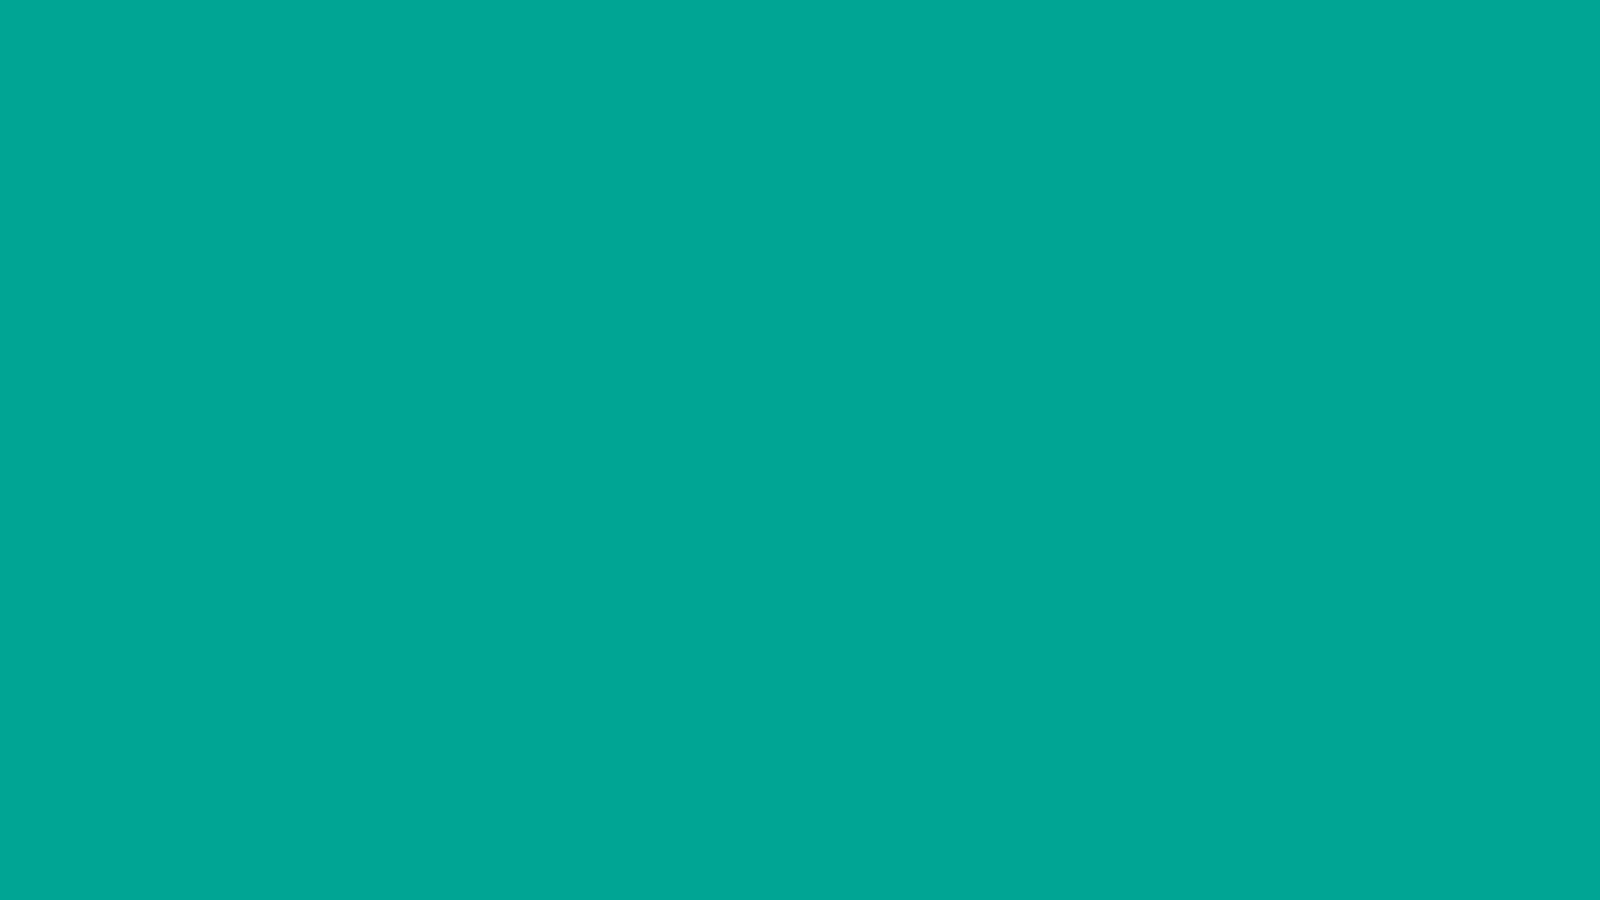 1600x900 Persian Green Solid Color Background